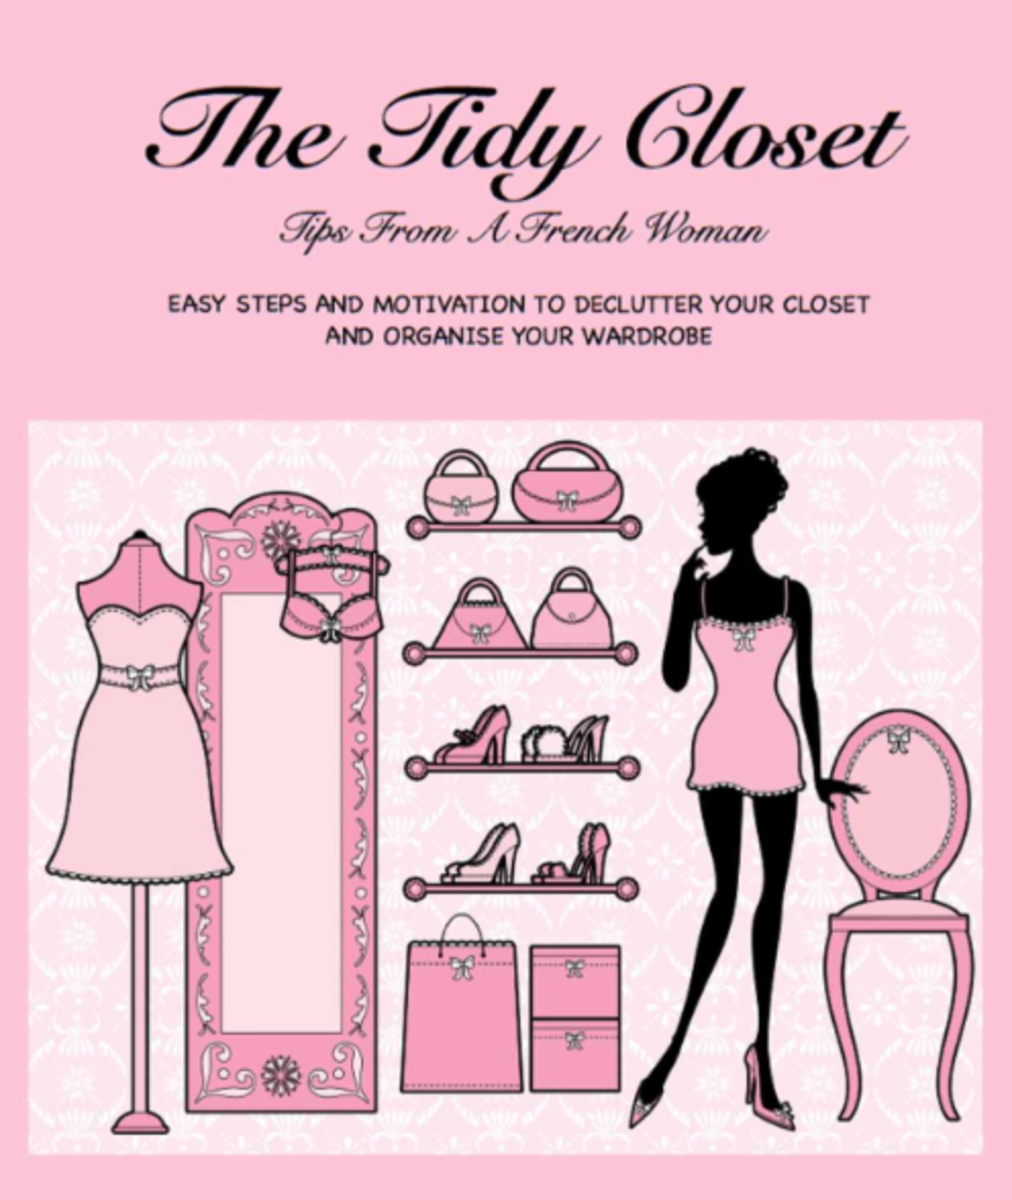 The Tidy Closet: Tips from a French Woman-Easy Steps and Motivation to Declutter Your Closet and Organise Your Wardrobe